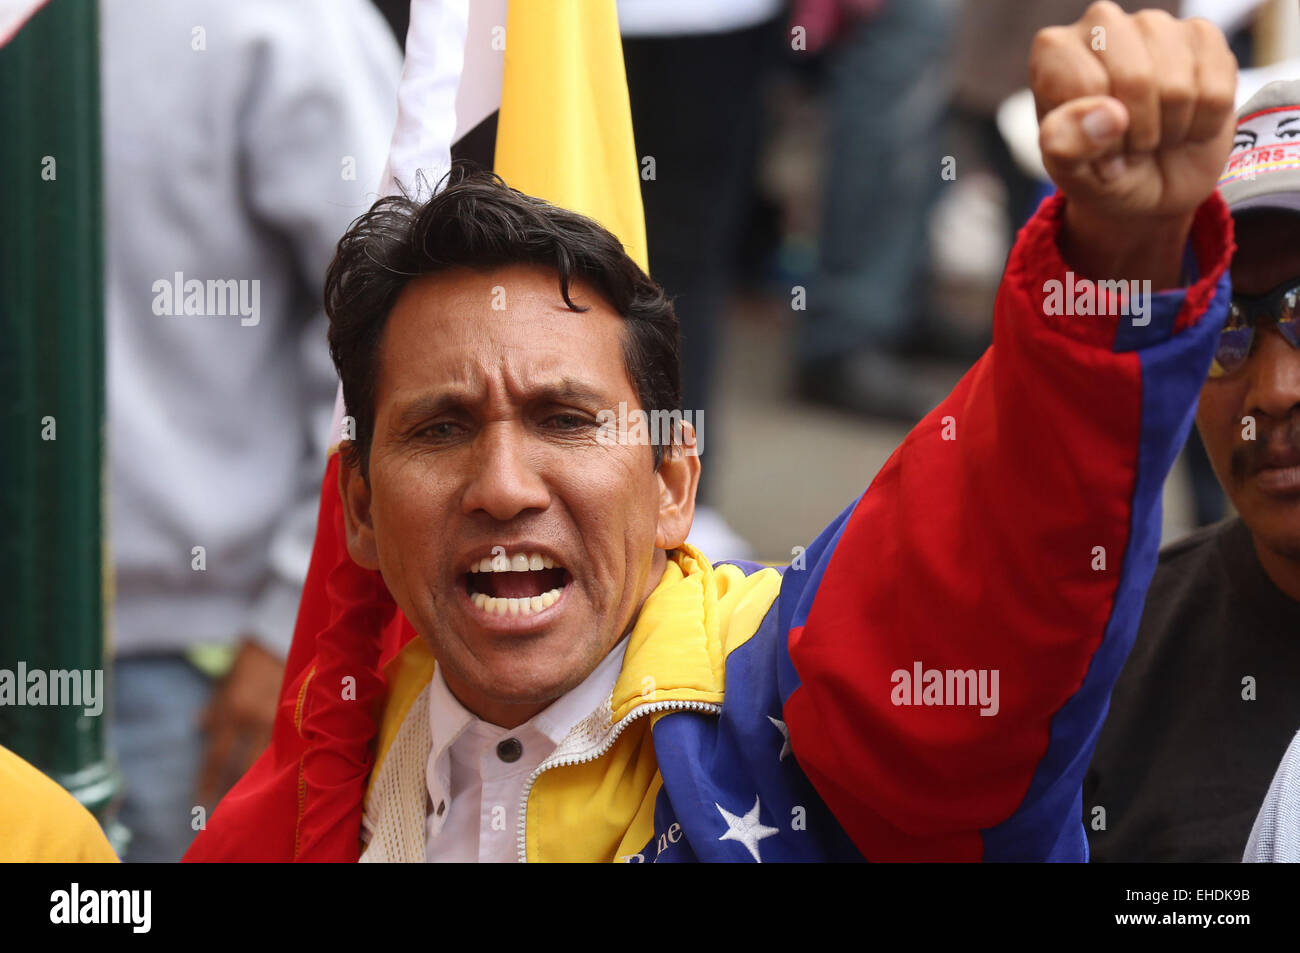 Caracas, Venezuela. 12th Mar, 2015. A resident shouts slogans during an 'anti-imperialist' march in Caracas, - Stock Image